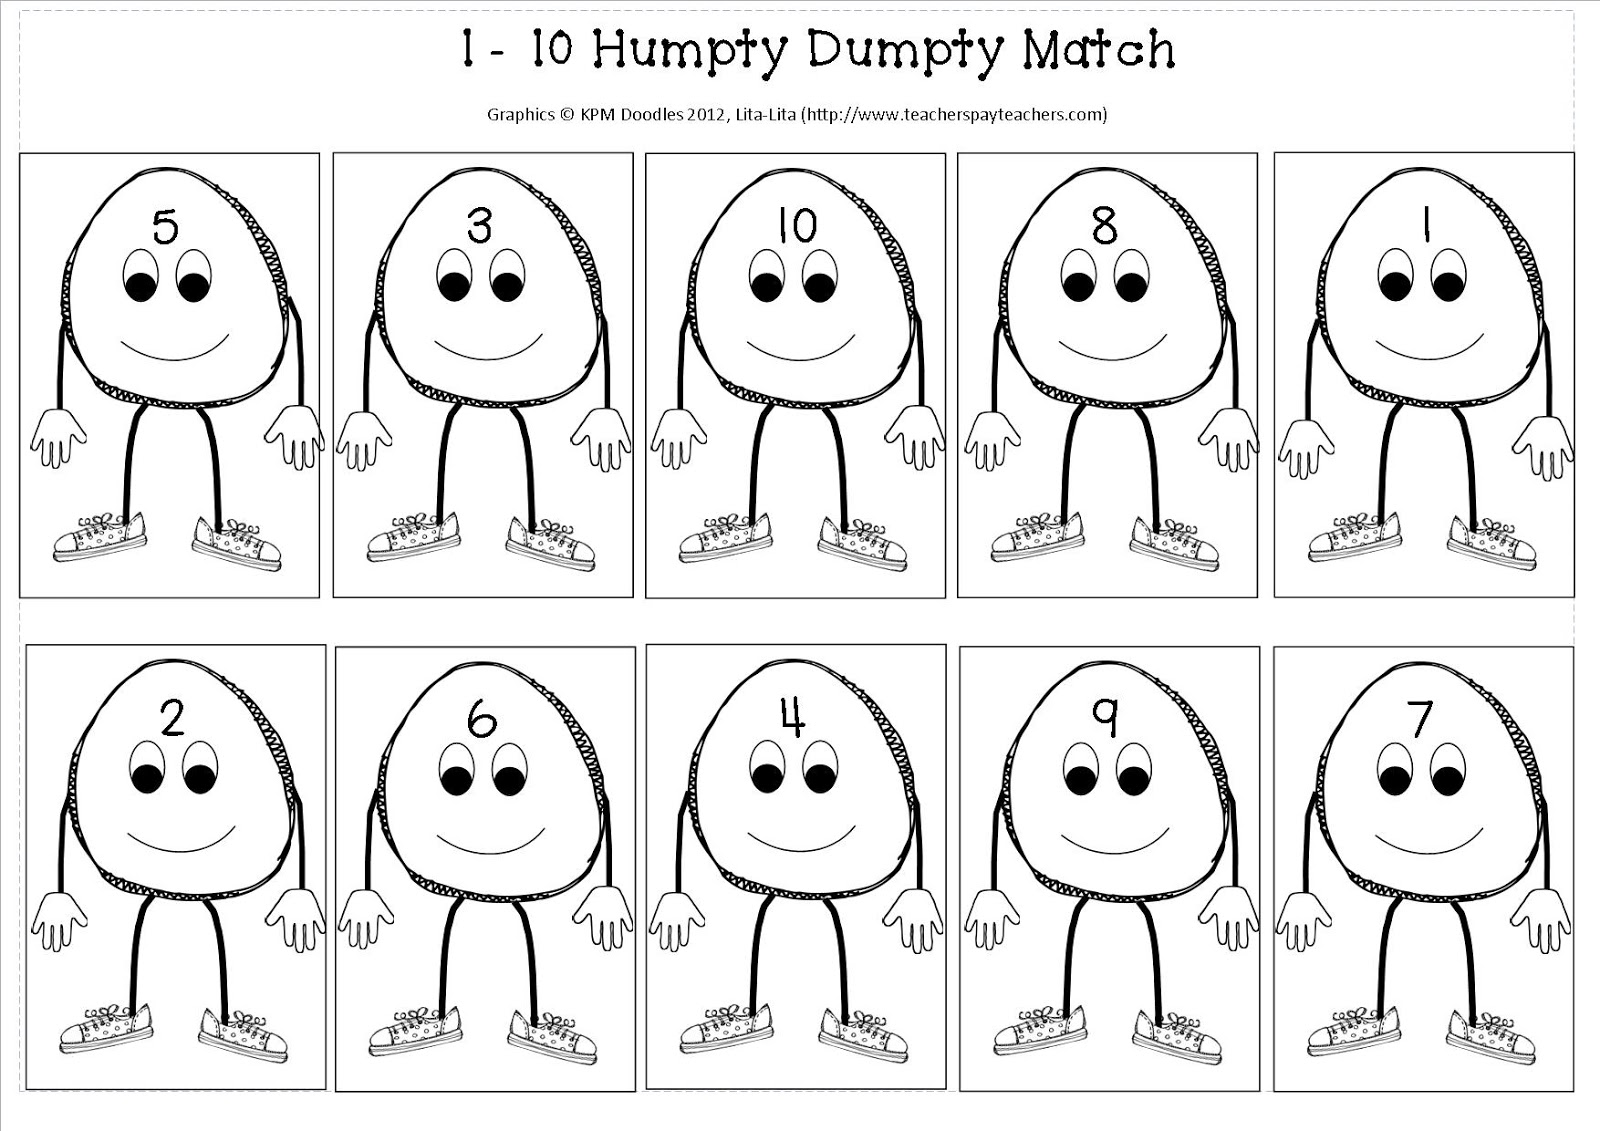 At Nursery Rhymes One Of Those Is Humpty Dumpty I Thought D Quickly Share A 1 10 Maths Activity That We Ll Be Doing You Can It Here